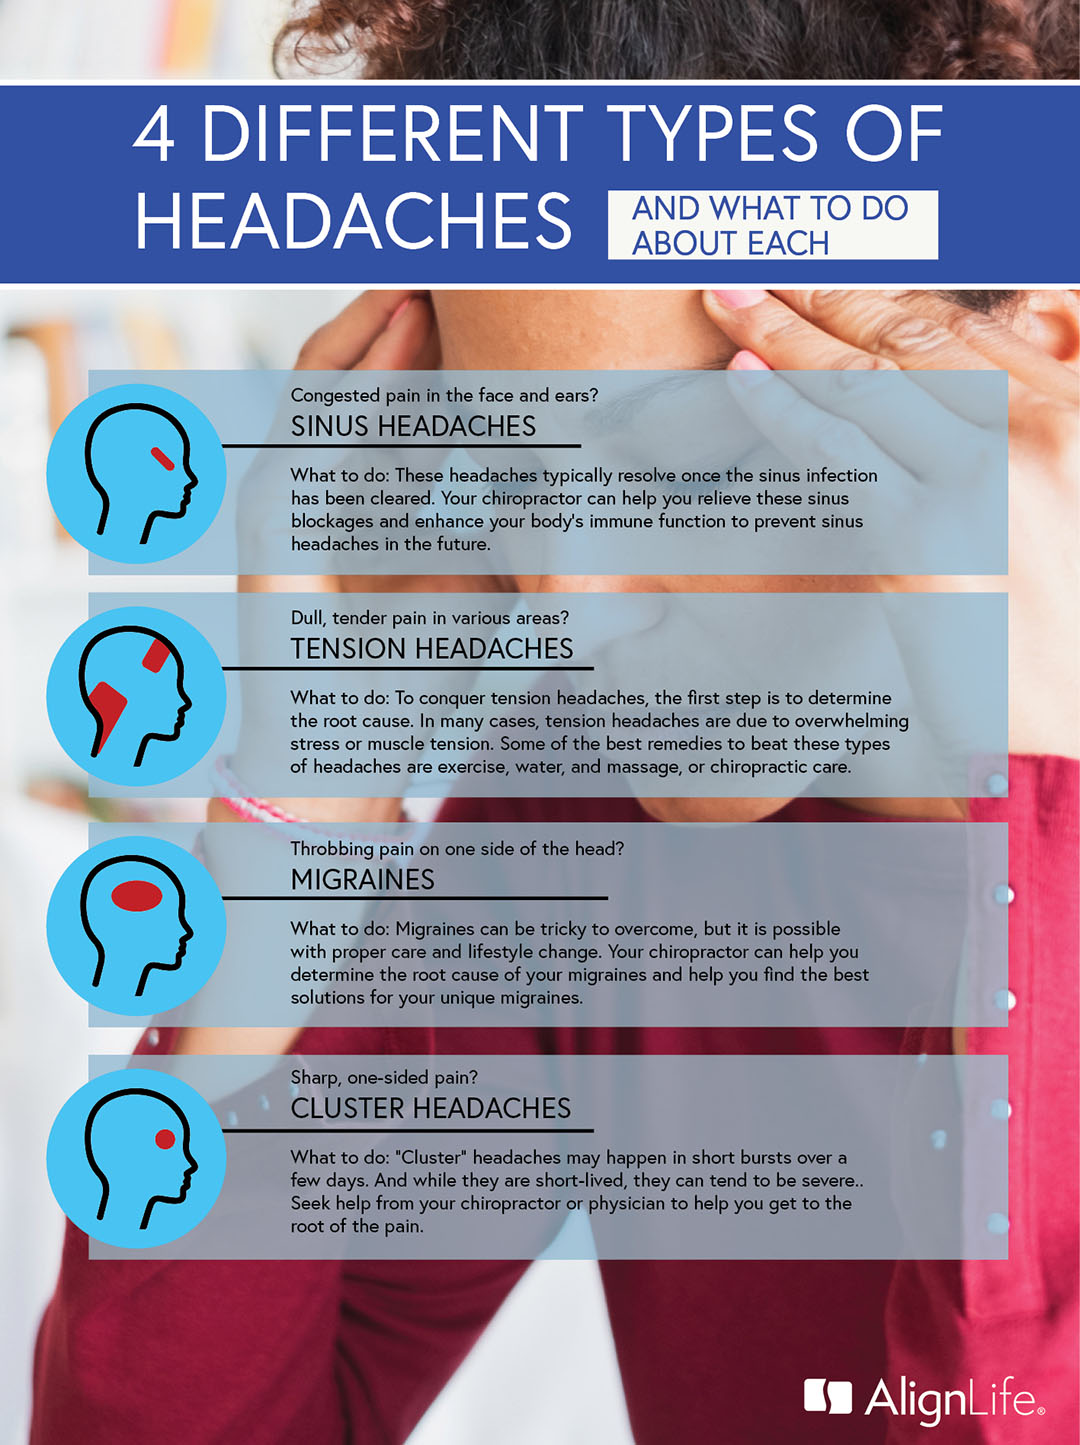 types of headaches and what to do - sinus, tension, migraine, cluster